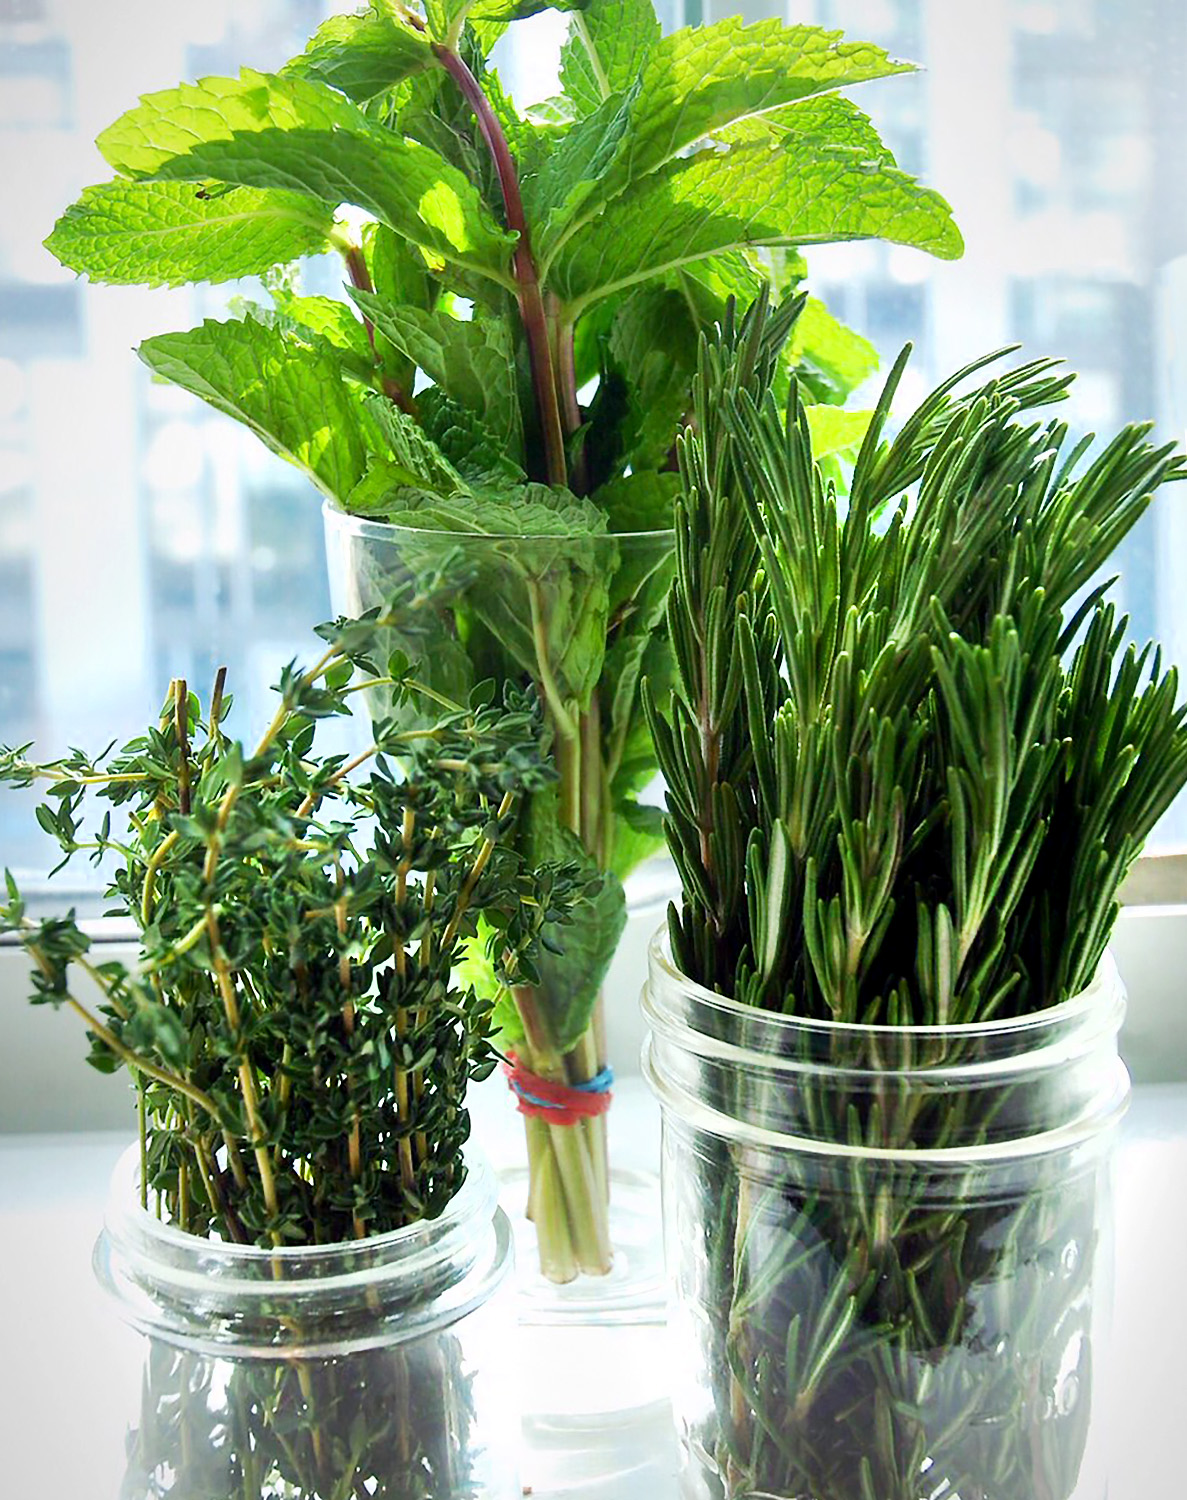 Summer herbs thyme, mint and rosemary in mason jars